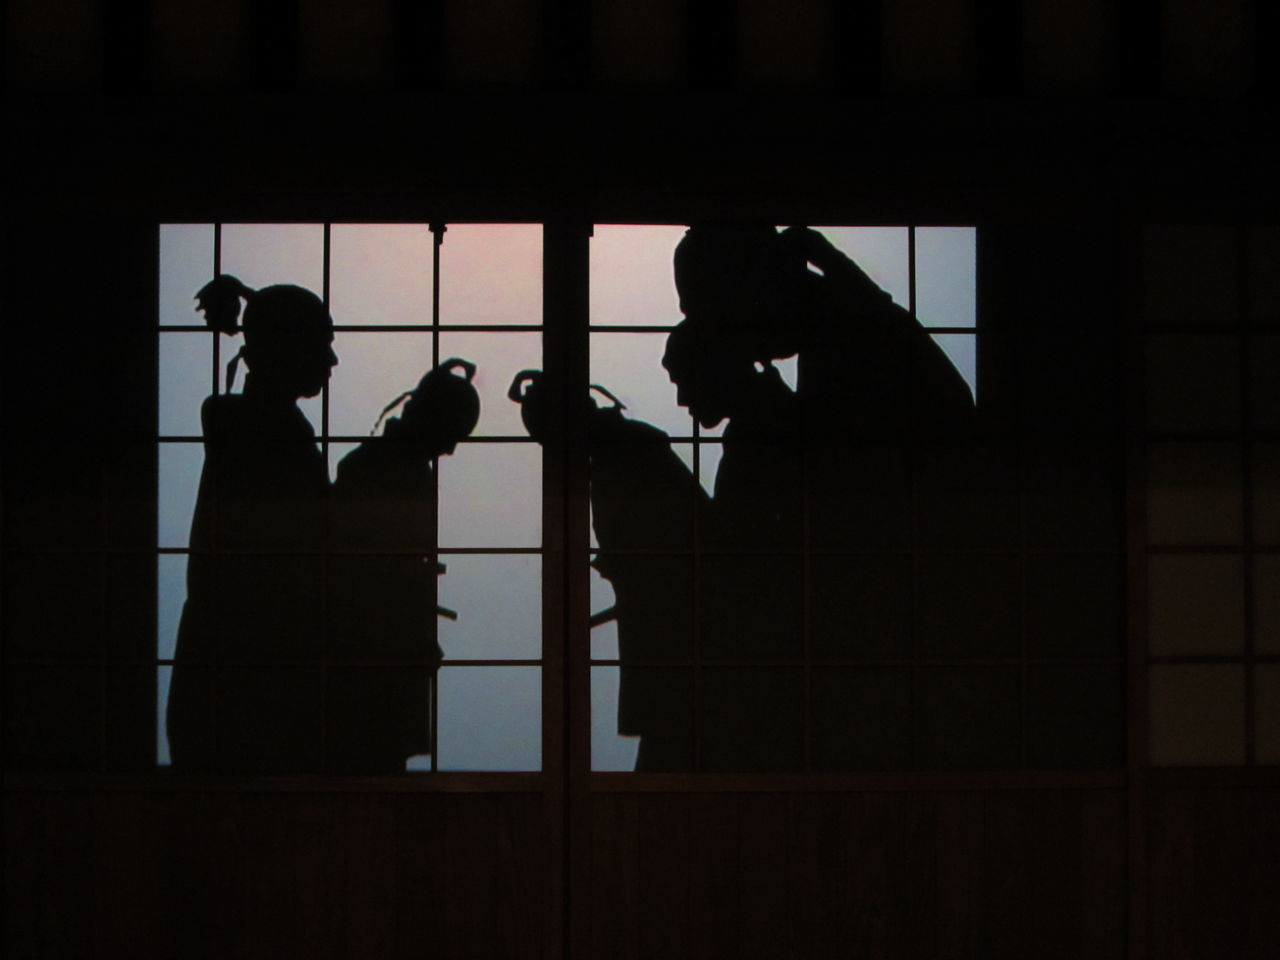 Silhouettes Bowing Bow Bowing Japan Japanese Culture Performance Shadow-art Shadows Shadows & Lights Silhouette Silhouette Silhouettes Of People Kokura Catsle Kokura Castle Kokura Jyo Kokura 小倉城 小倉